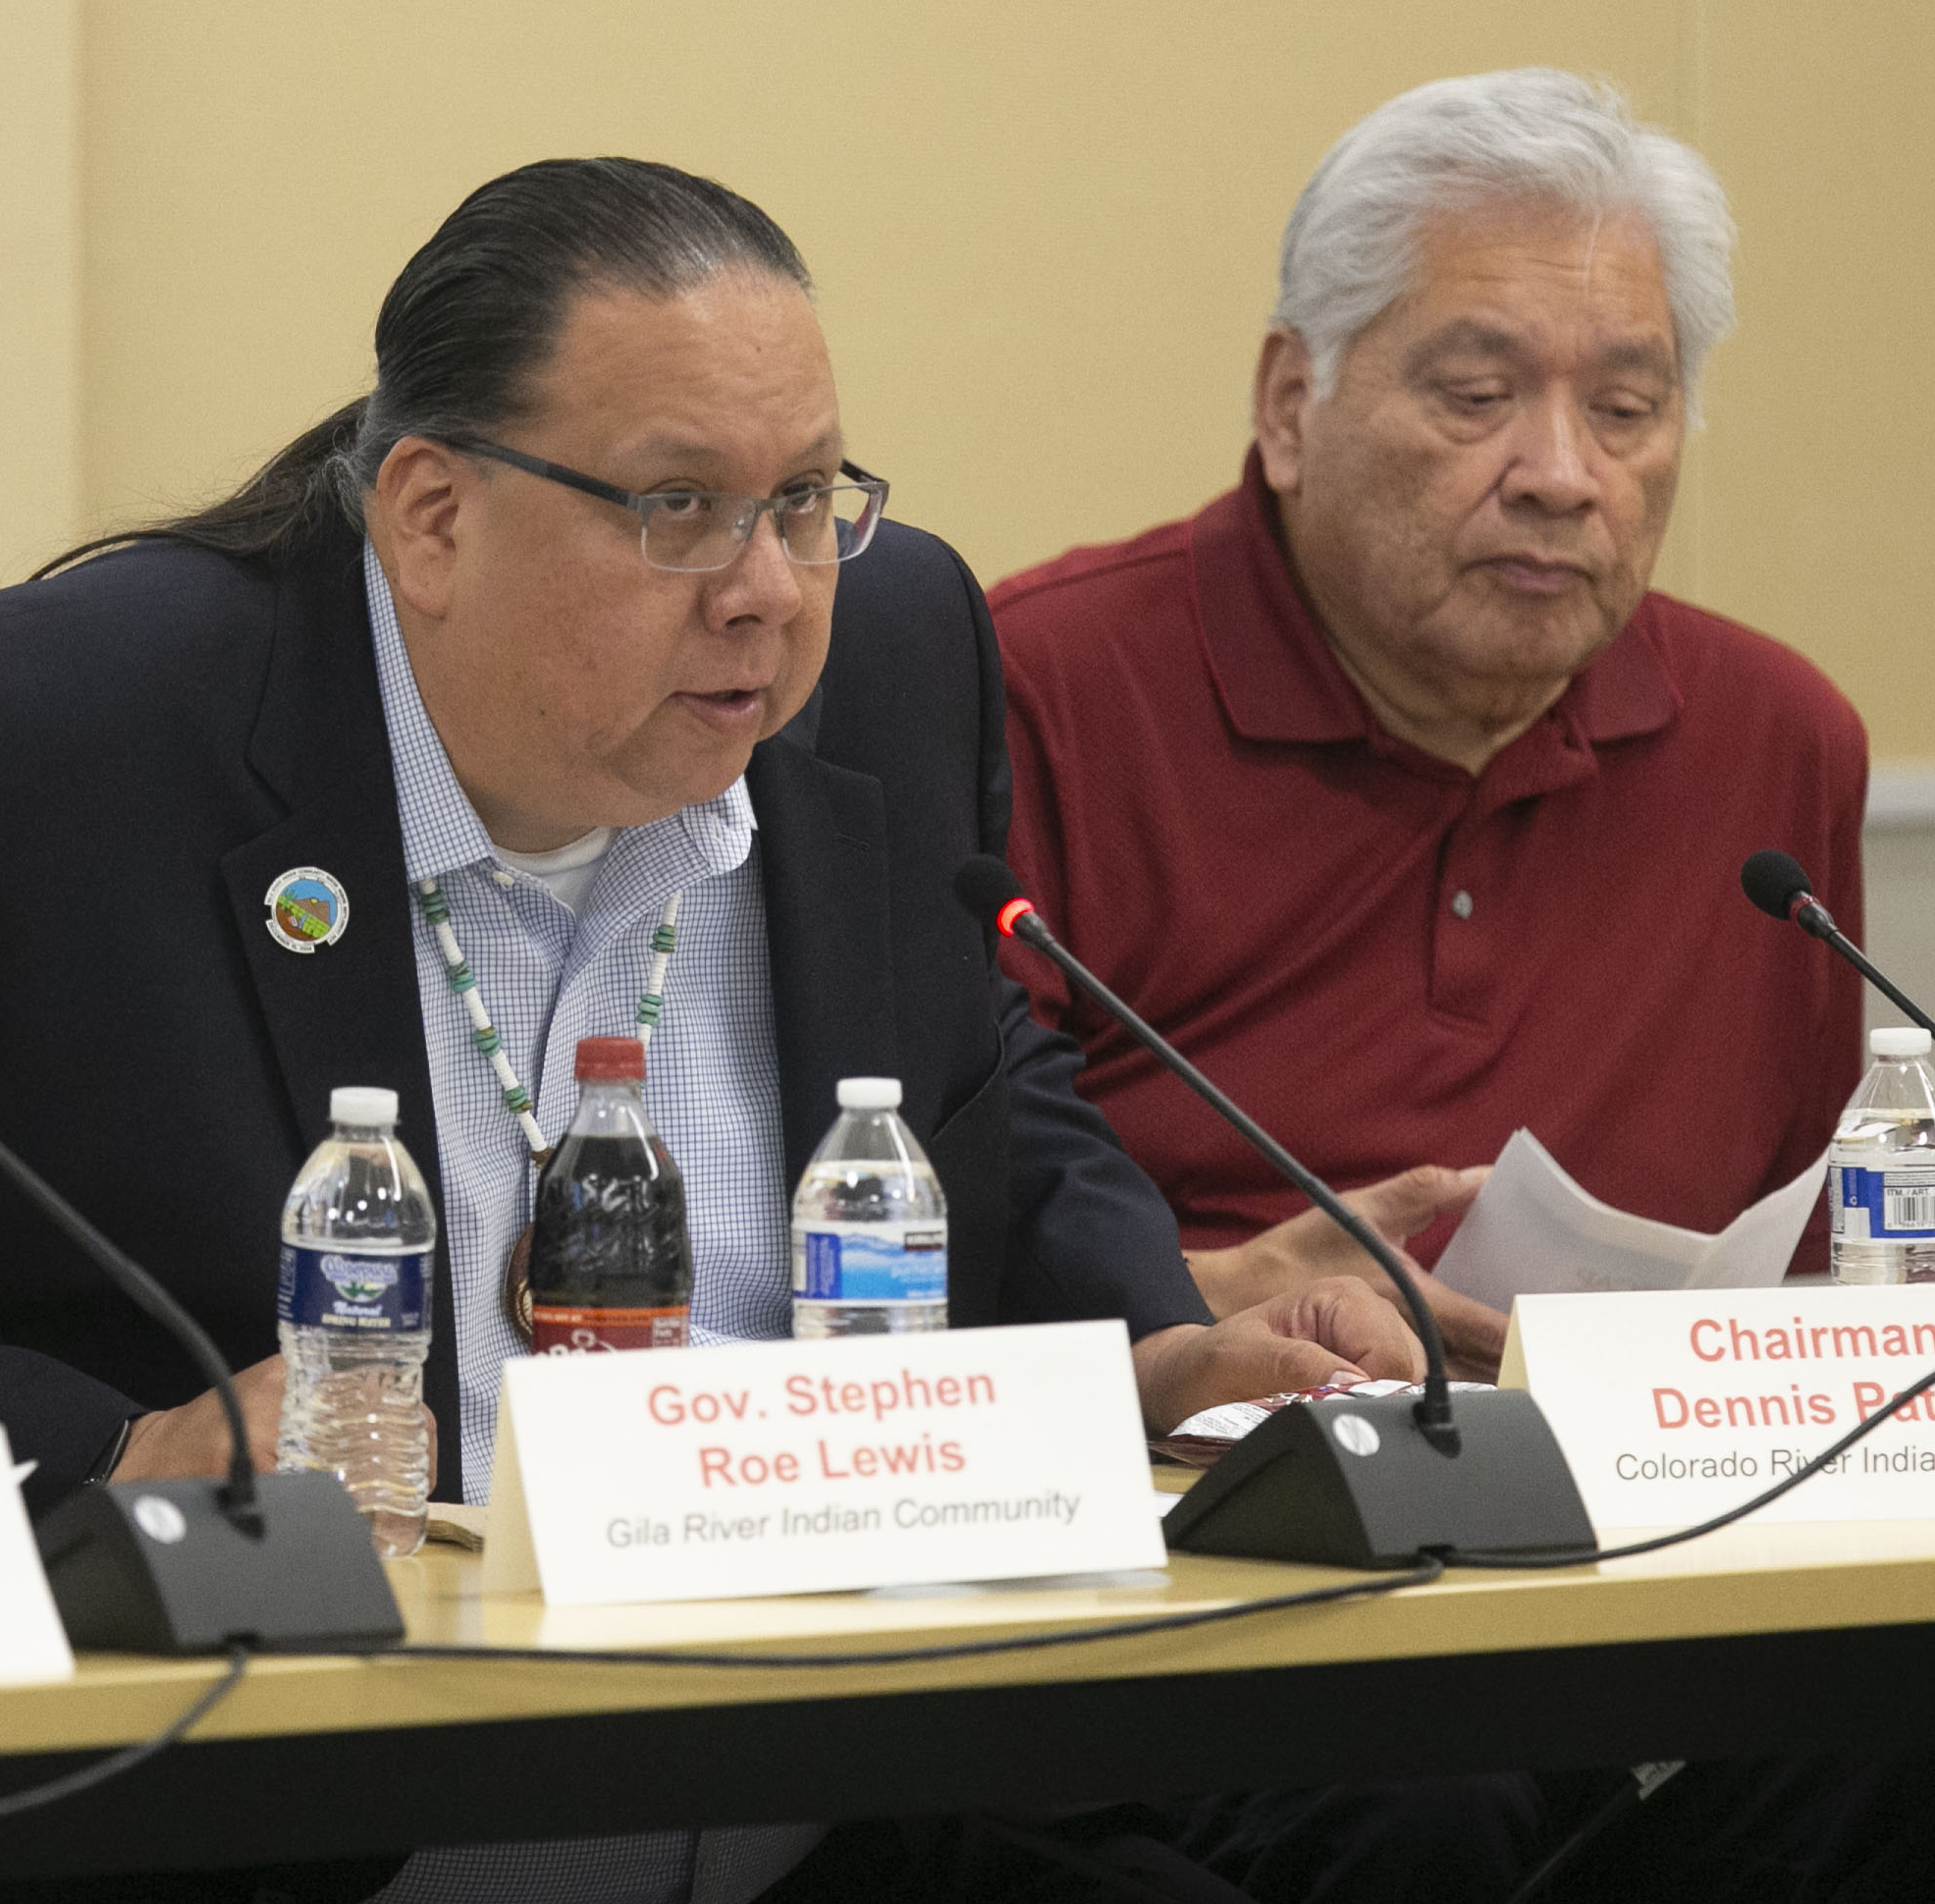 Gila River Indian Community moves ahead with Colorado River drought plan after clash with lawmaker